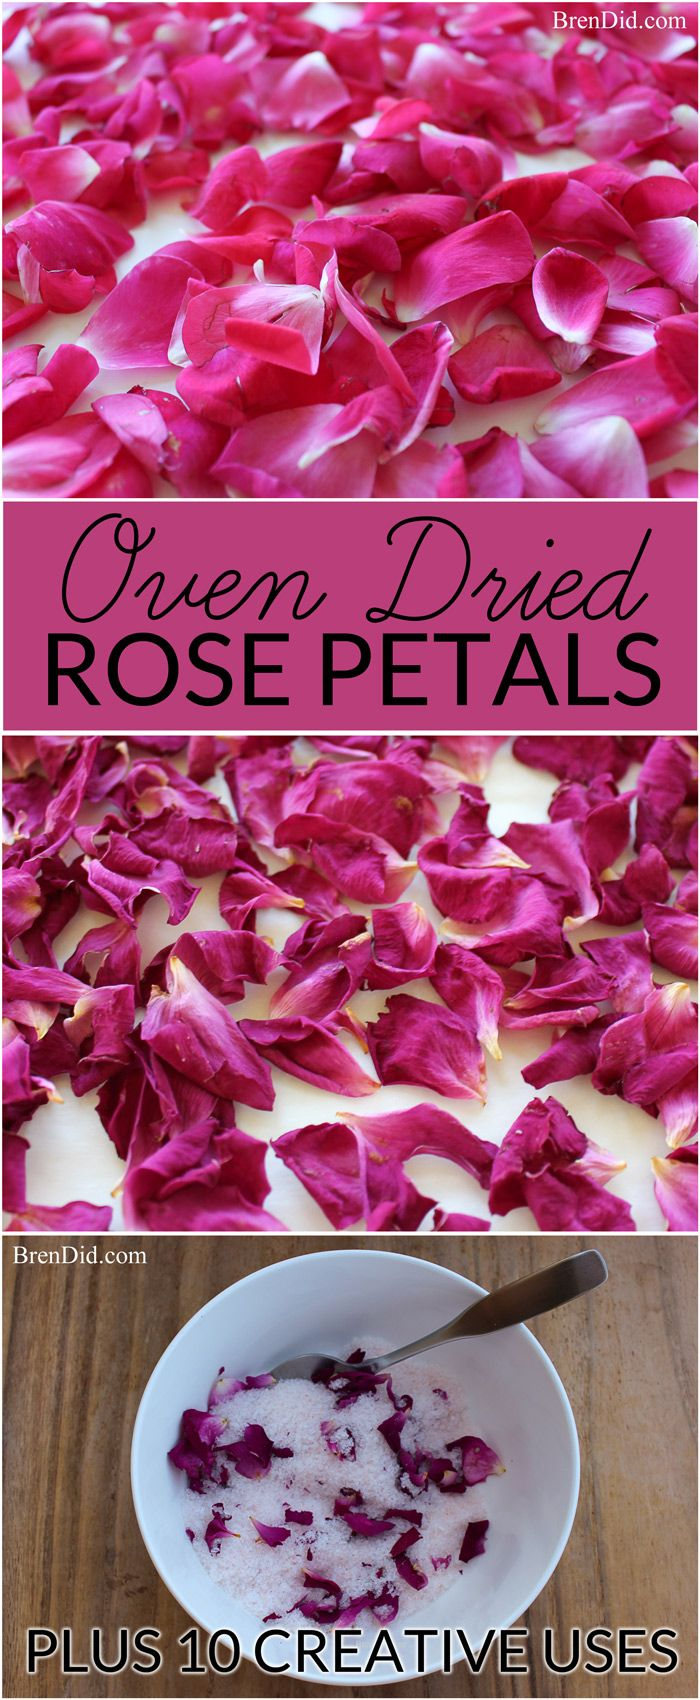 How to oven dry rose petals